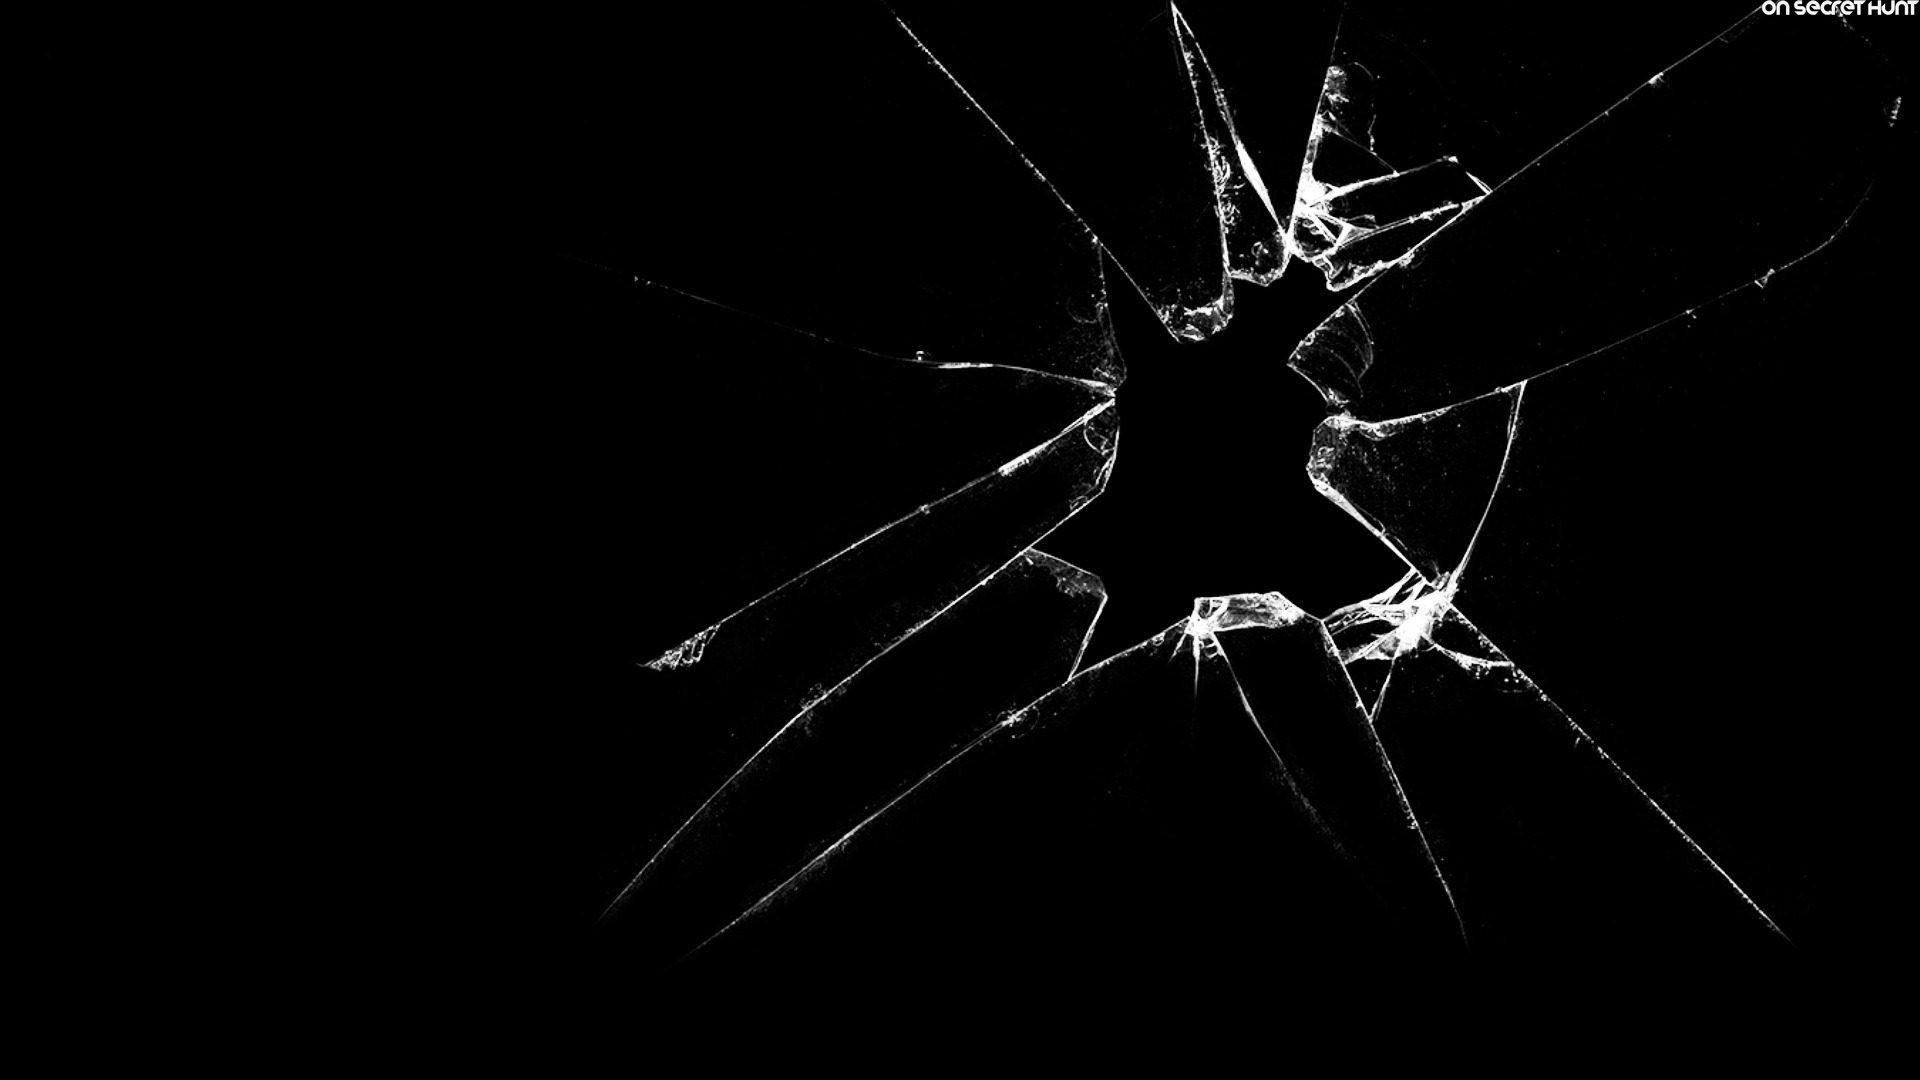 Broken Glass Wallpaper. 1920×1080